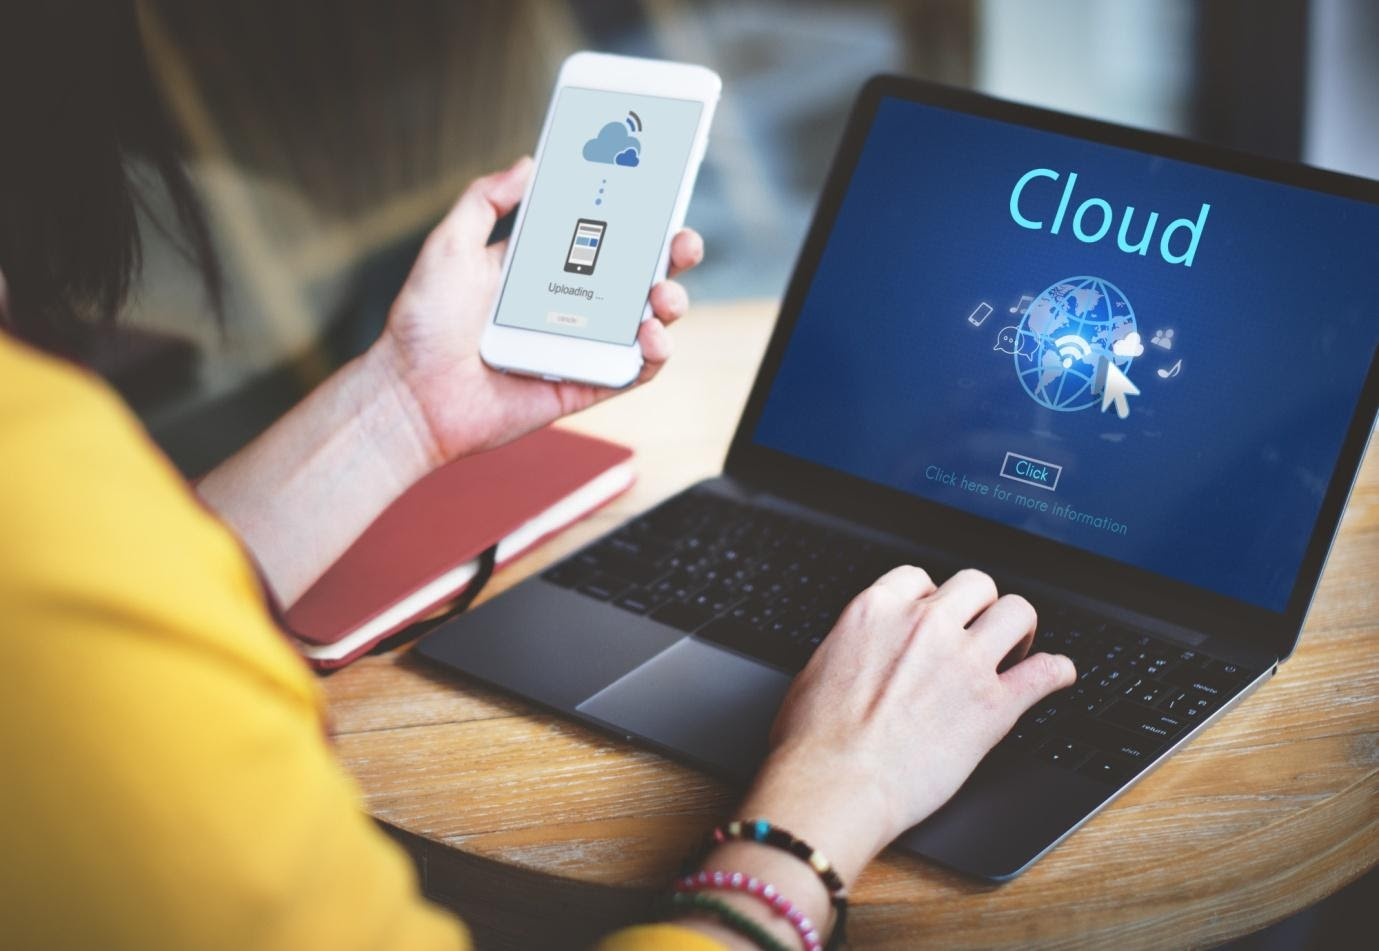 A Step-by-Step Guide for a Successful Cloud Migration